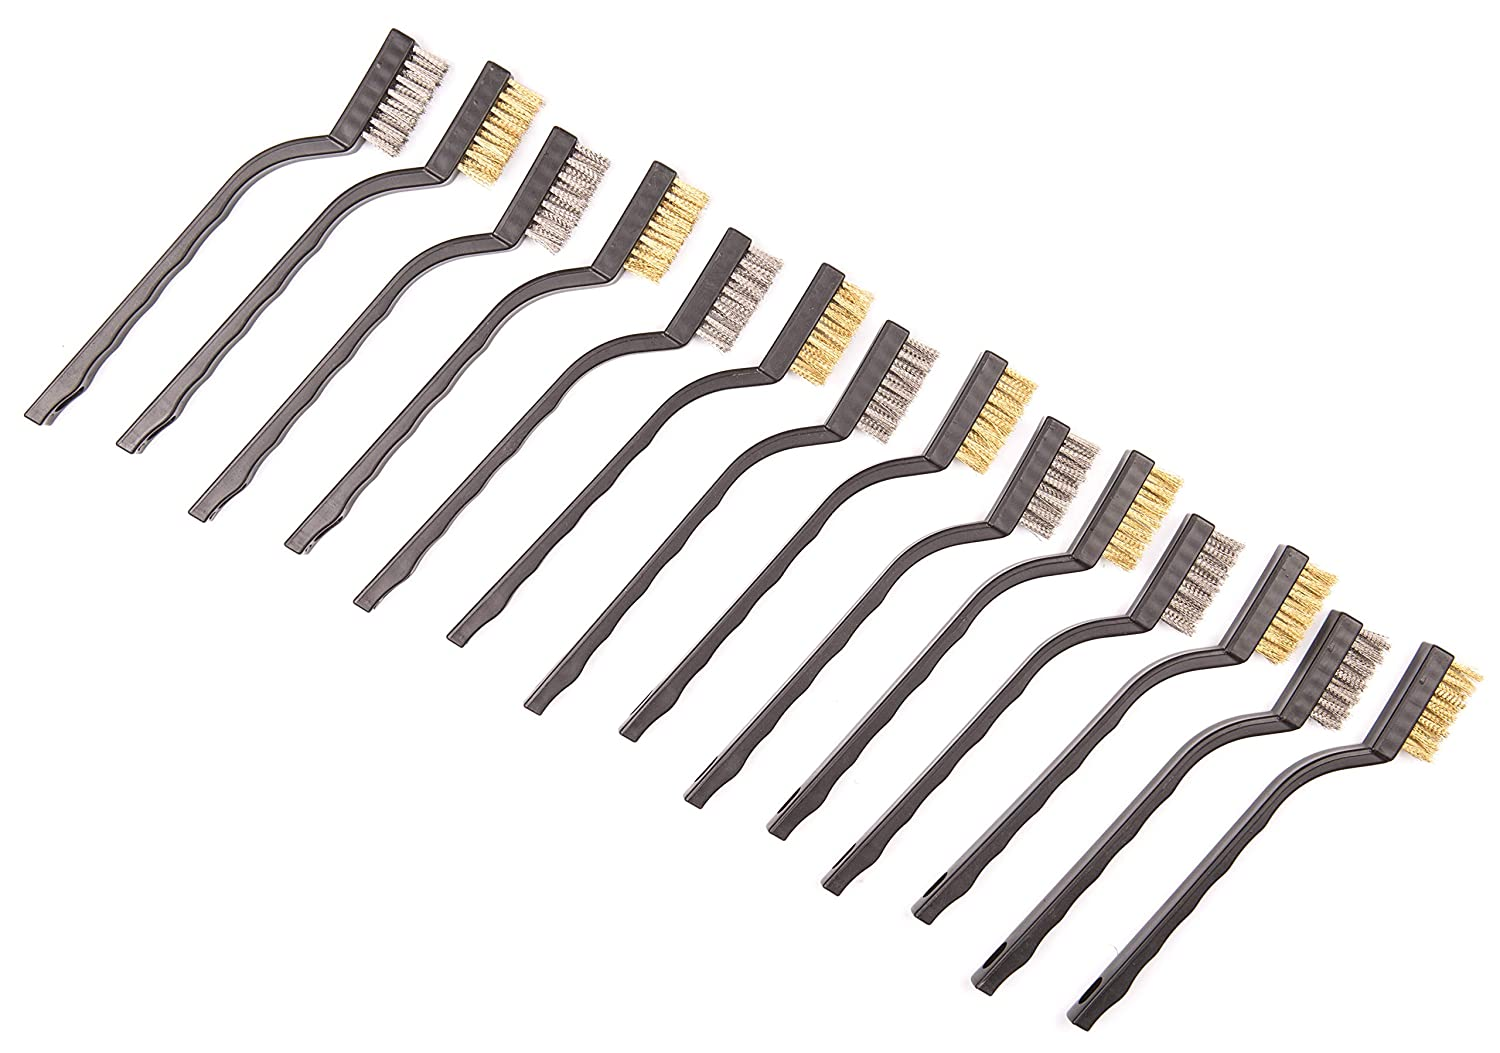 14 Pack Wire Brush Set for Cleaning Welding Slag and Rust Curved Handle Masonry brush Wire bristle Scratch Brush Stainless Steel and Brass